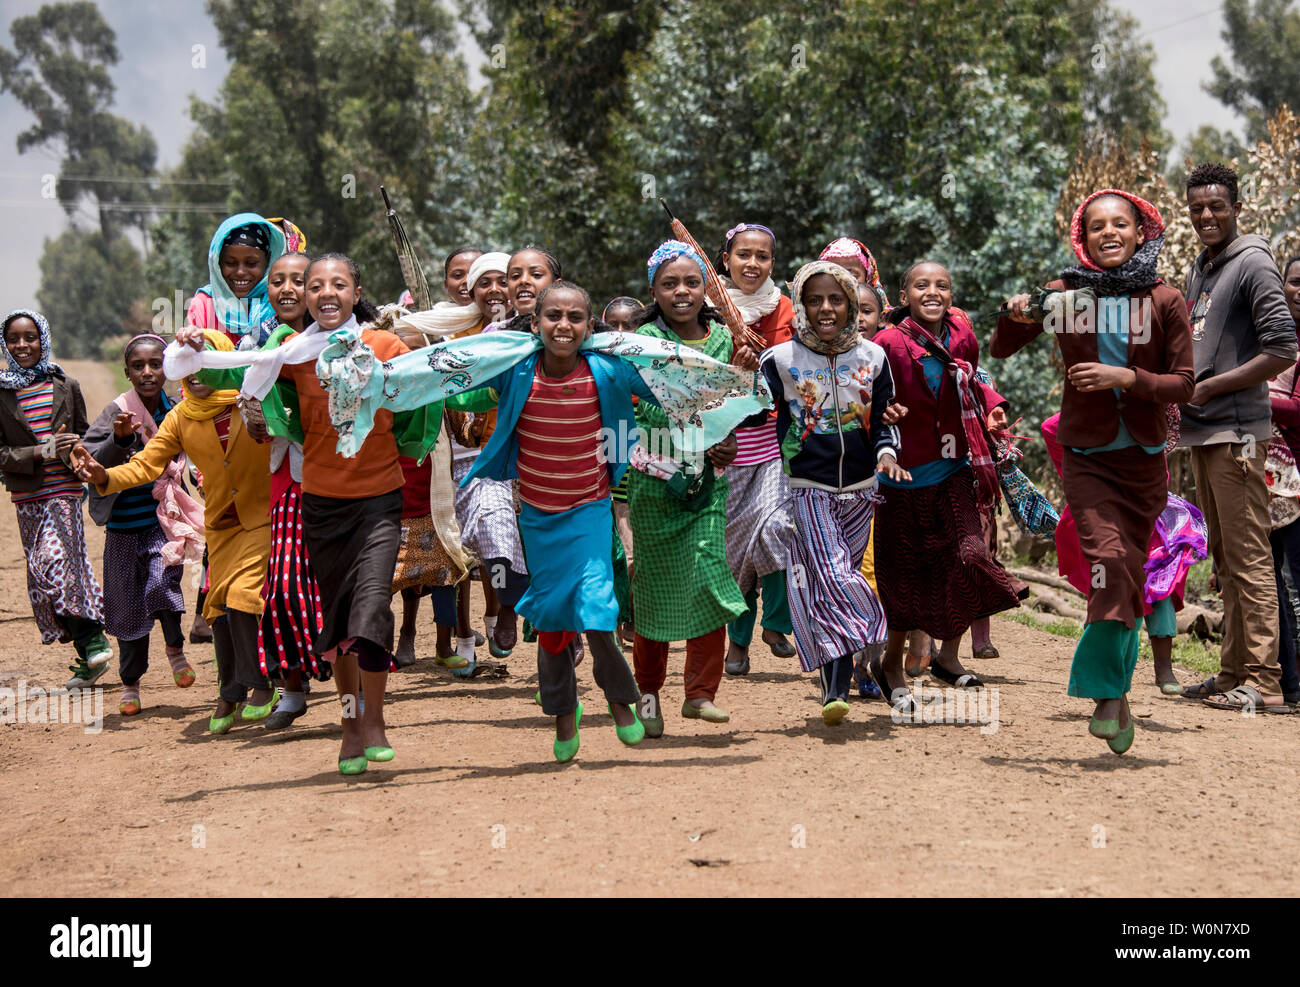 Oromia Stock Photos & Oromia Stock Images - Alamy